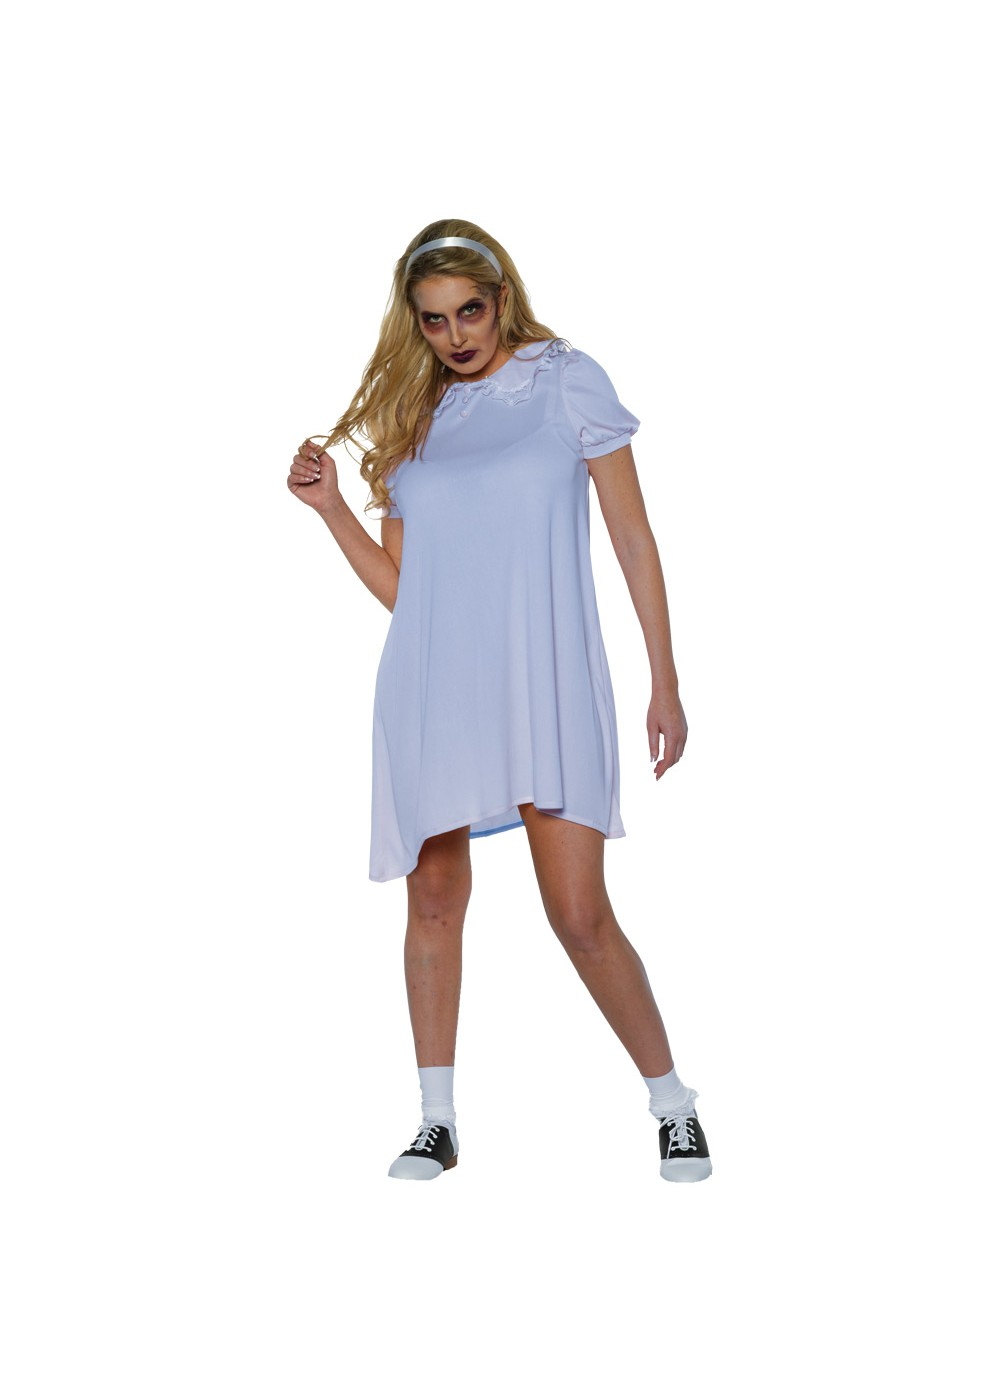 Womens Scary Girl Costume